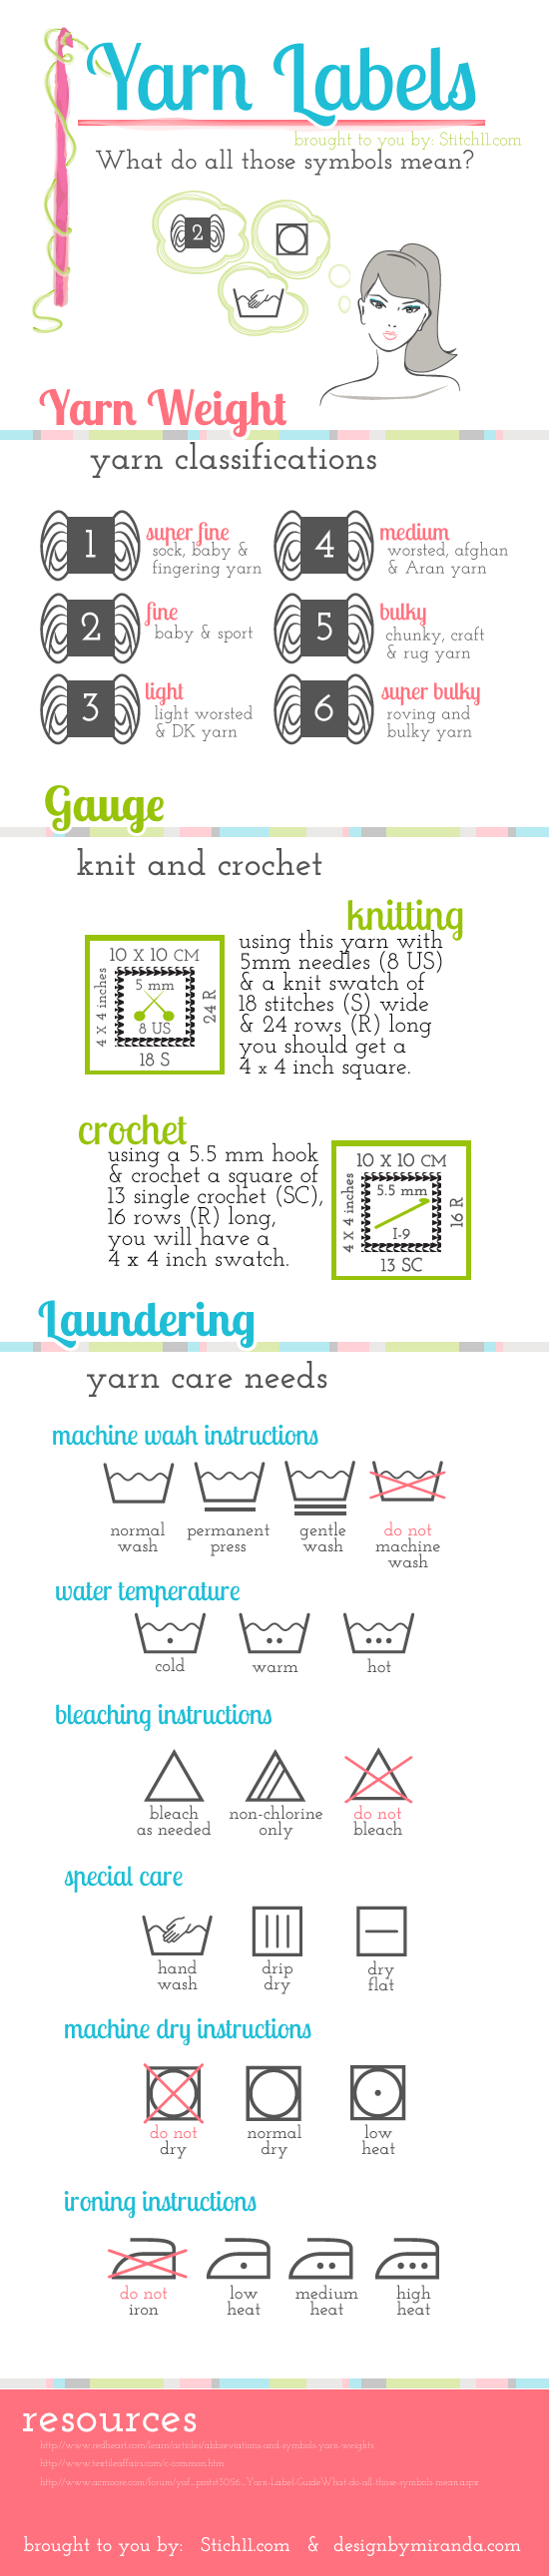 Yarn Labels Infographic So What Do Those Symbols On Your Clothes Picture Of Are All Mean